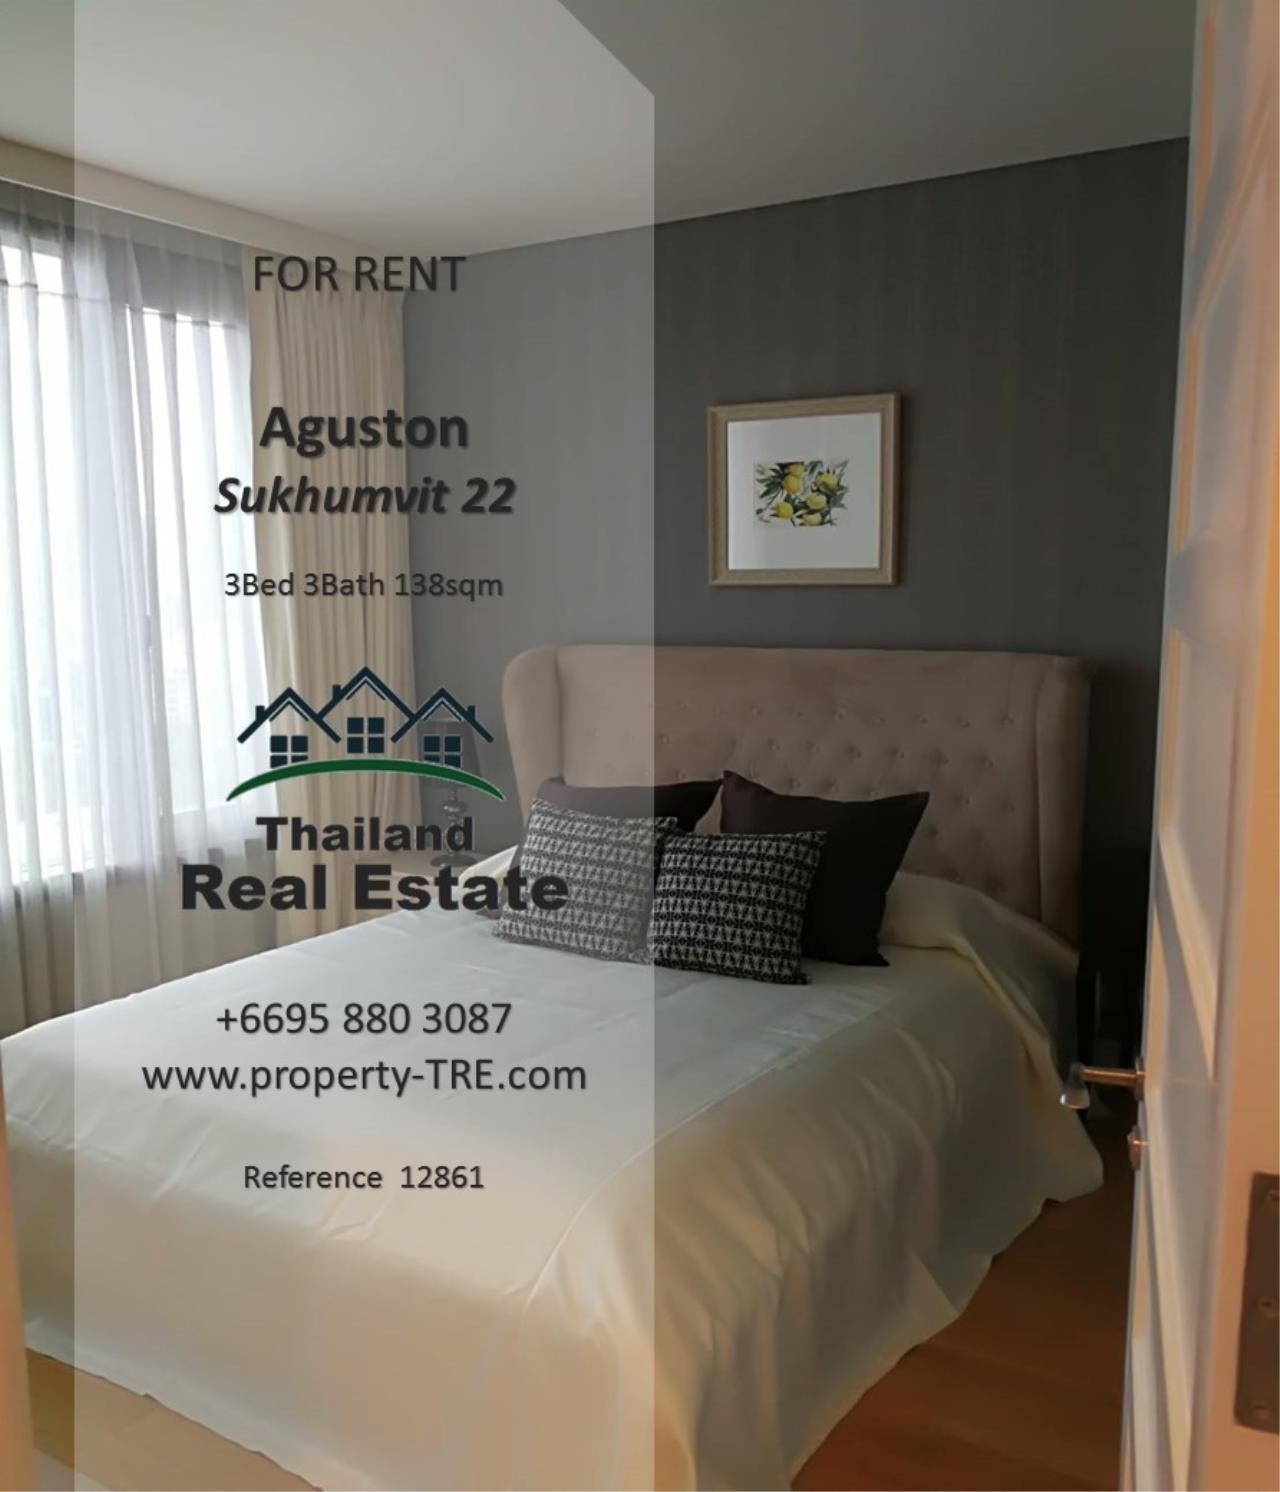 Thailand Real Estate Agency's 3 Bedroom Condo at Aguston Sukhumvit 22 near BTS Phrom Phong(12681) 13